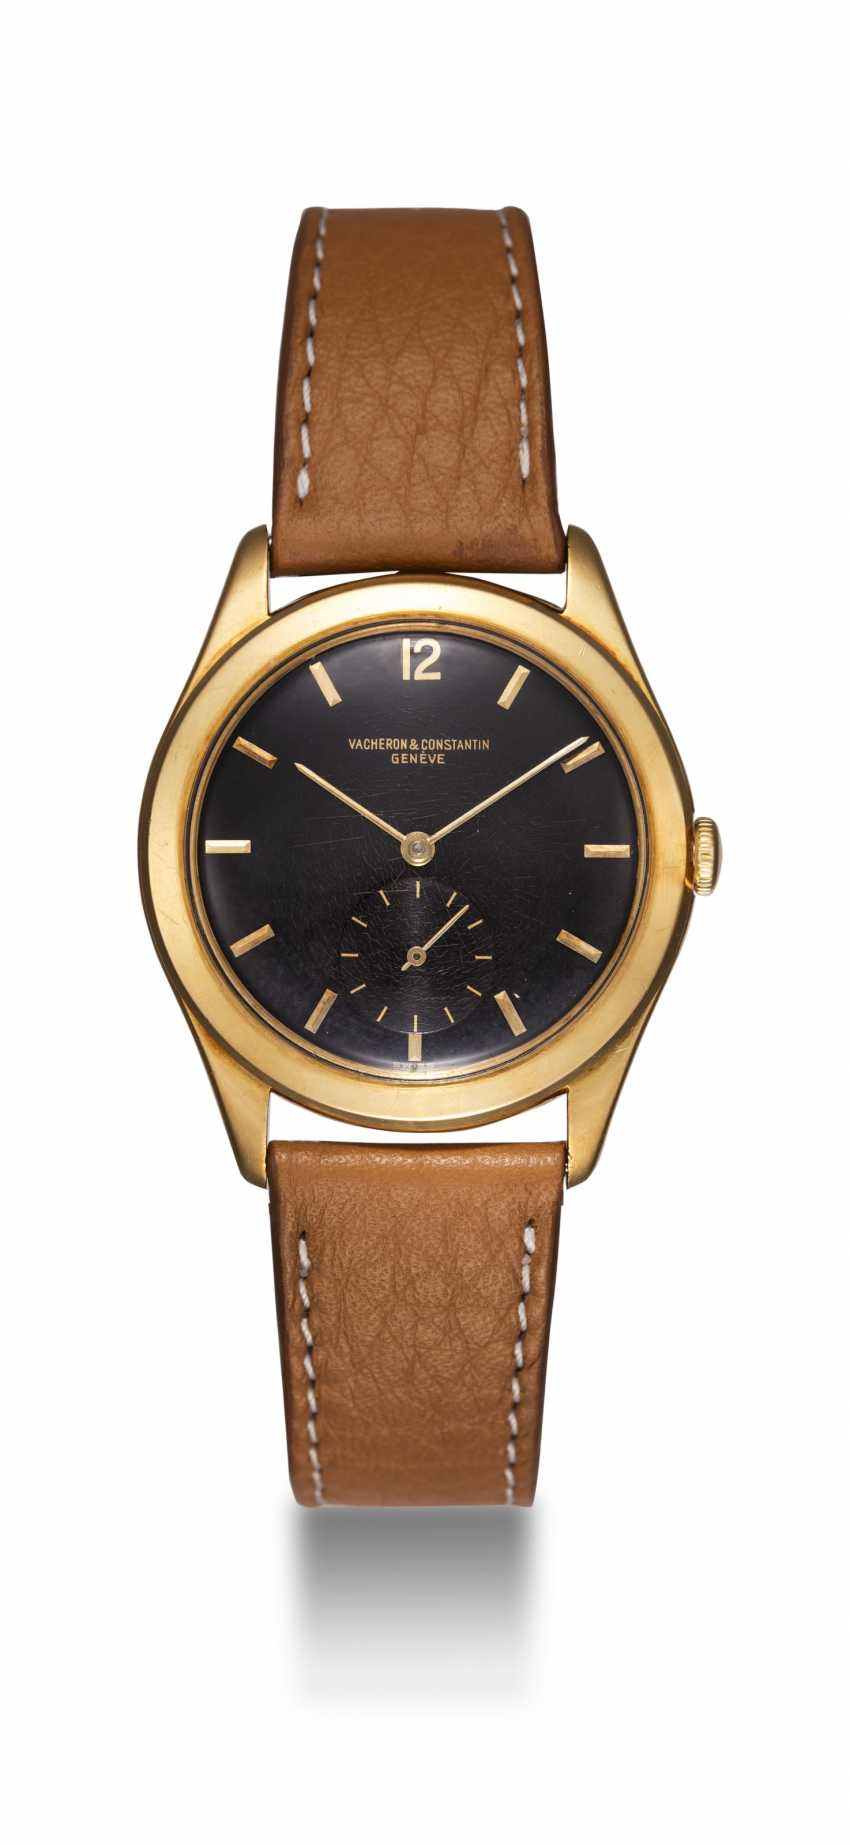 VACHERON CONSTANTIN, A GOLD MANUAL-WINDING DRESS WATCH - photo 3